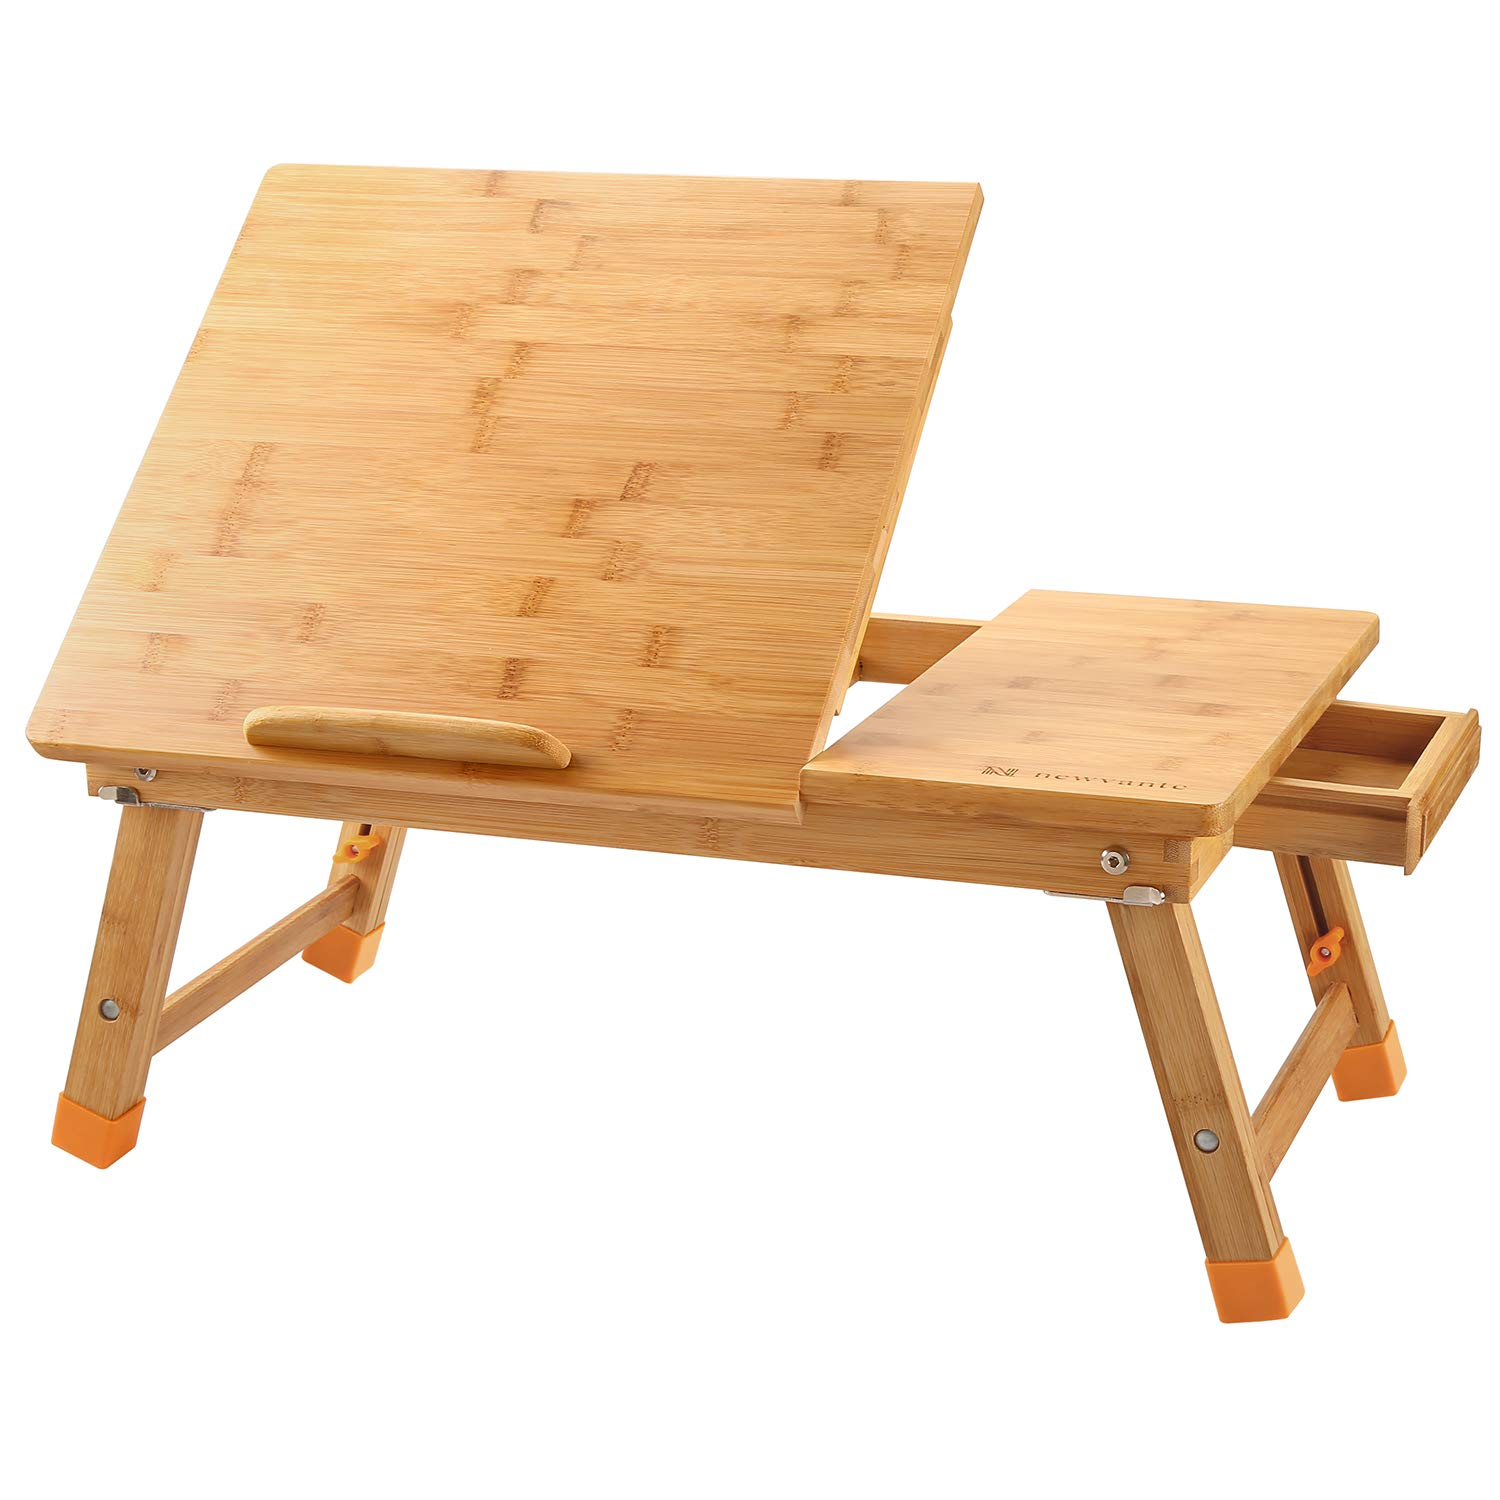 Large Laptop Desk Nnewvante Table Adjustable 100% Bamboo Foldable Breakfast Serving Bed Tray Table w' Tilting Top Drawer Leg Cover by NNEWVANTE